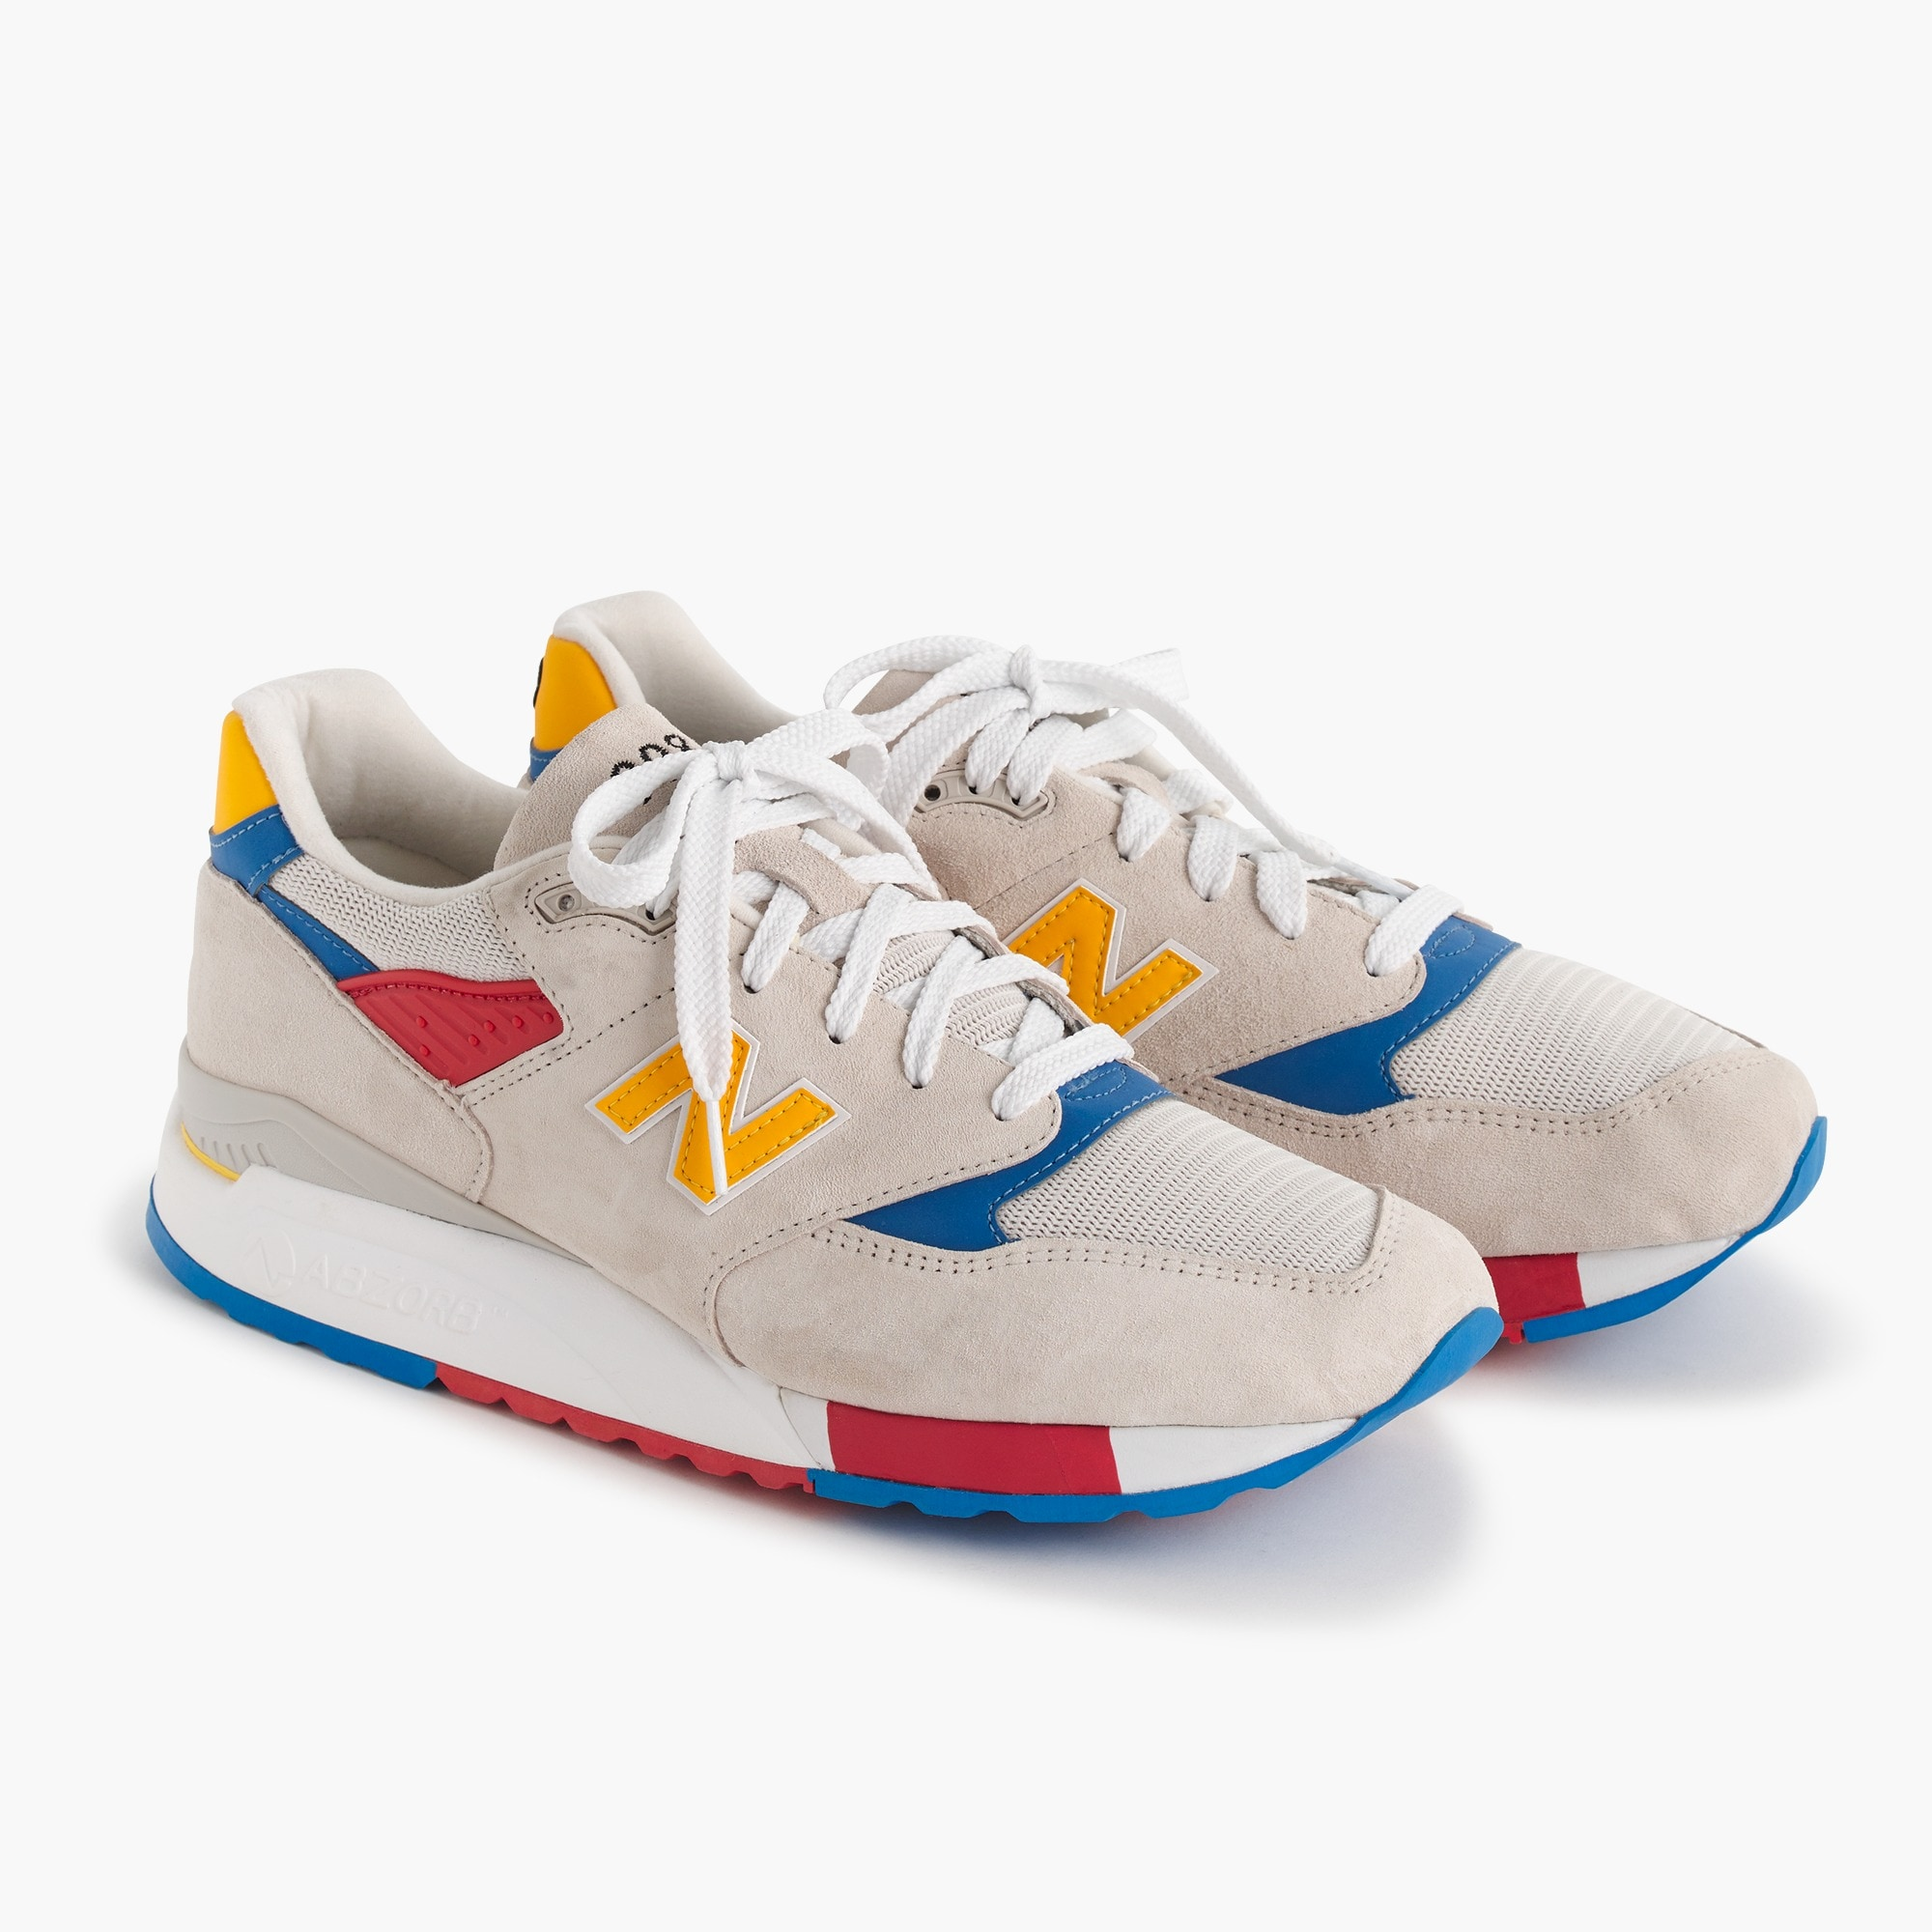 New Balance® for J.Crew 998 Beach Ball sneakers